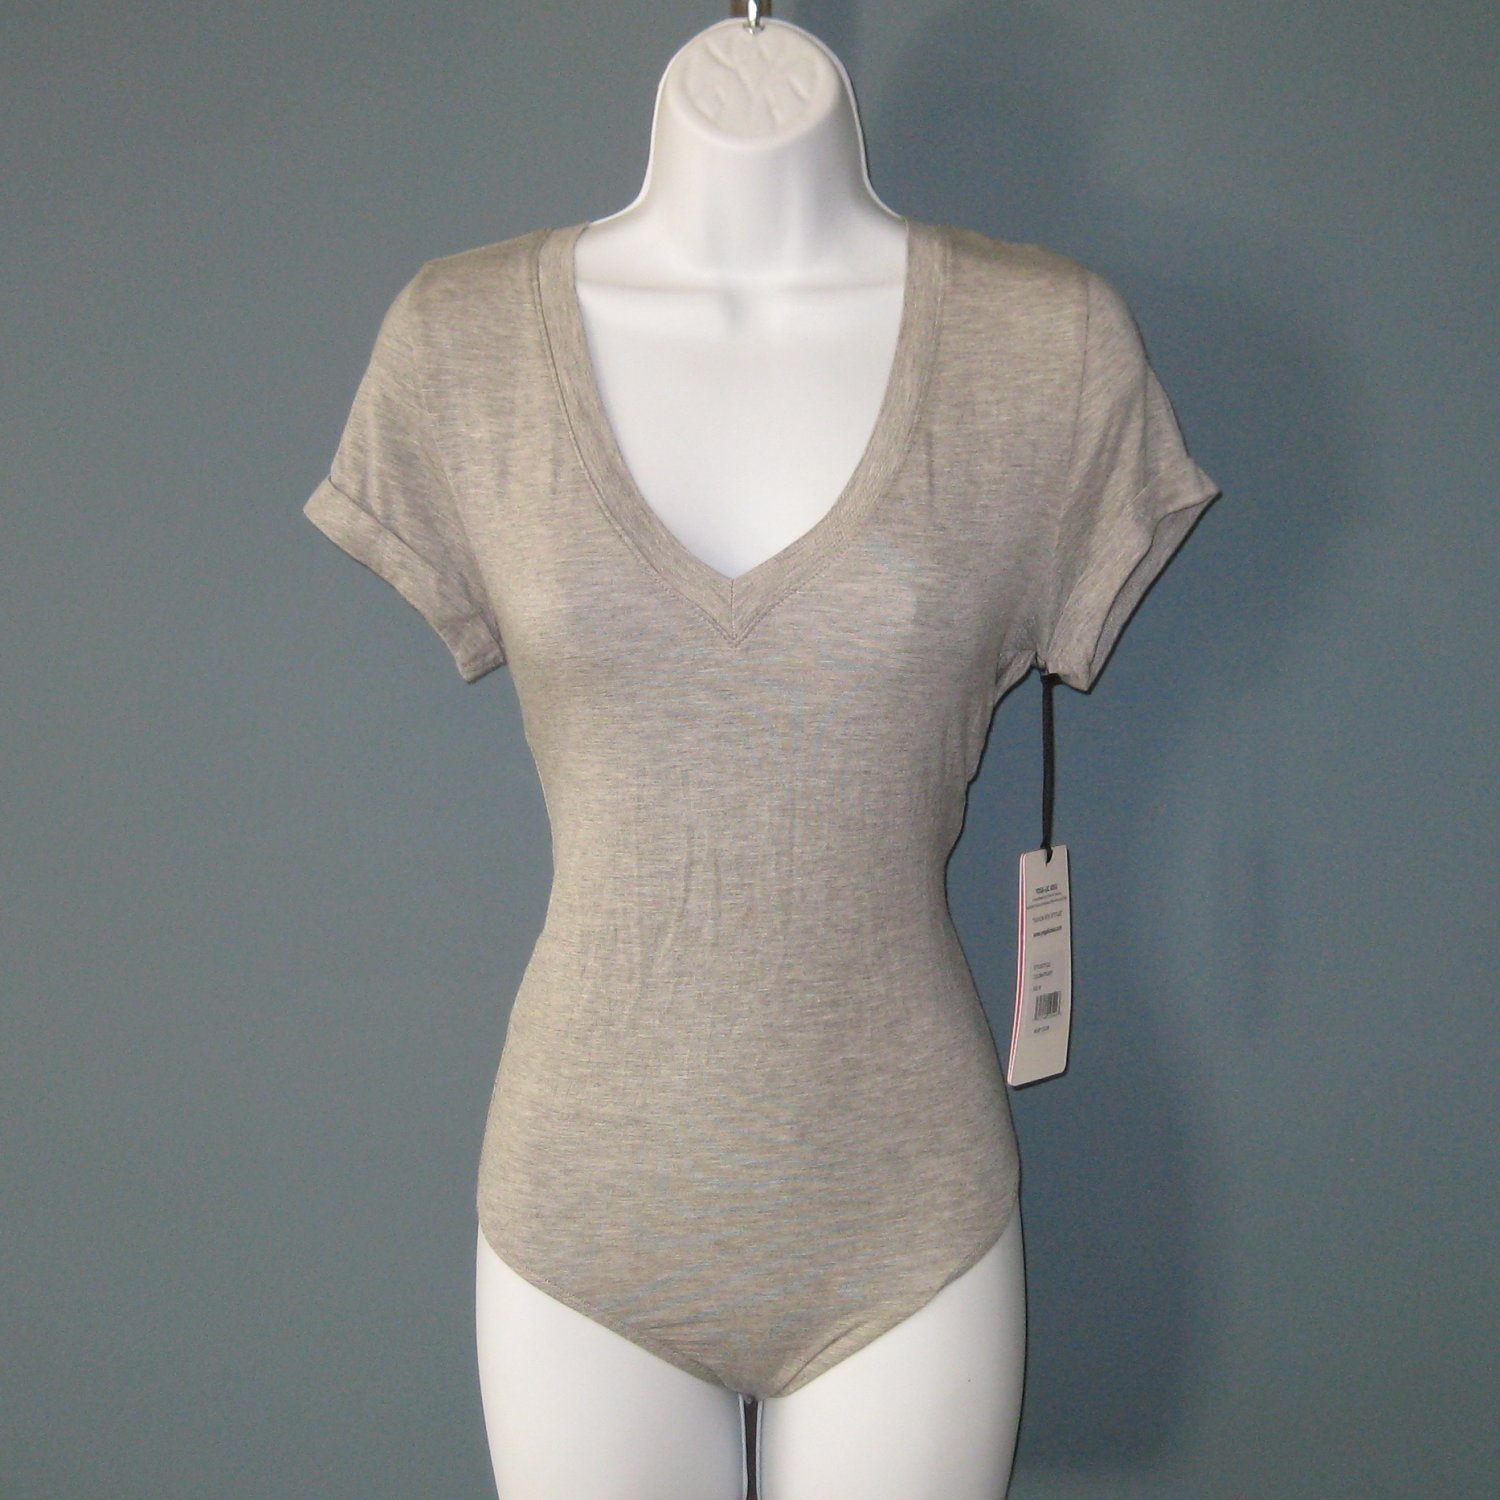 NWT Yogalicious Heather Grey (Gray) Bodysuit #DY5222 - M